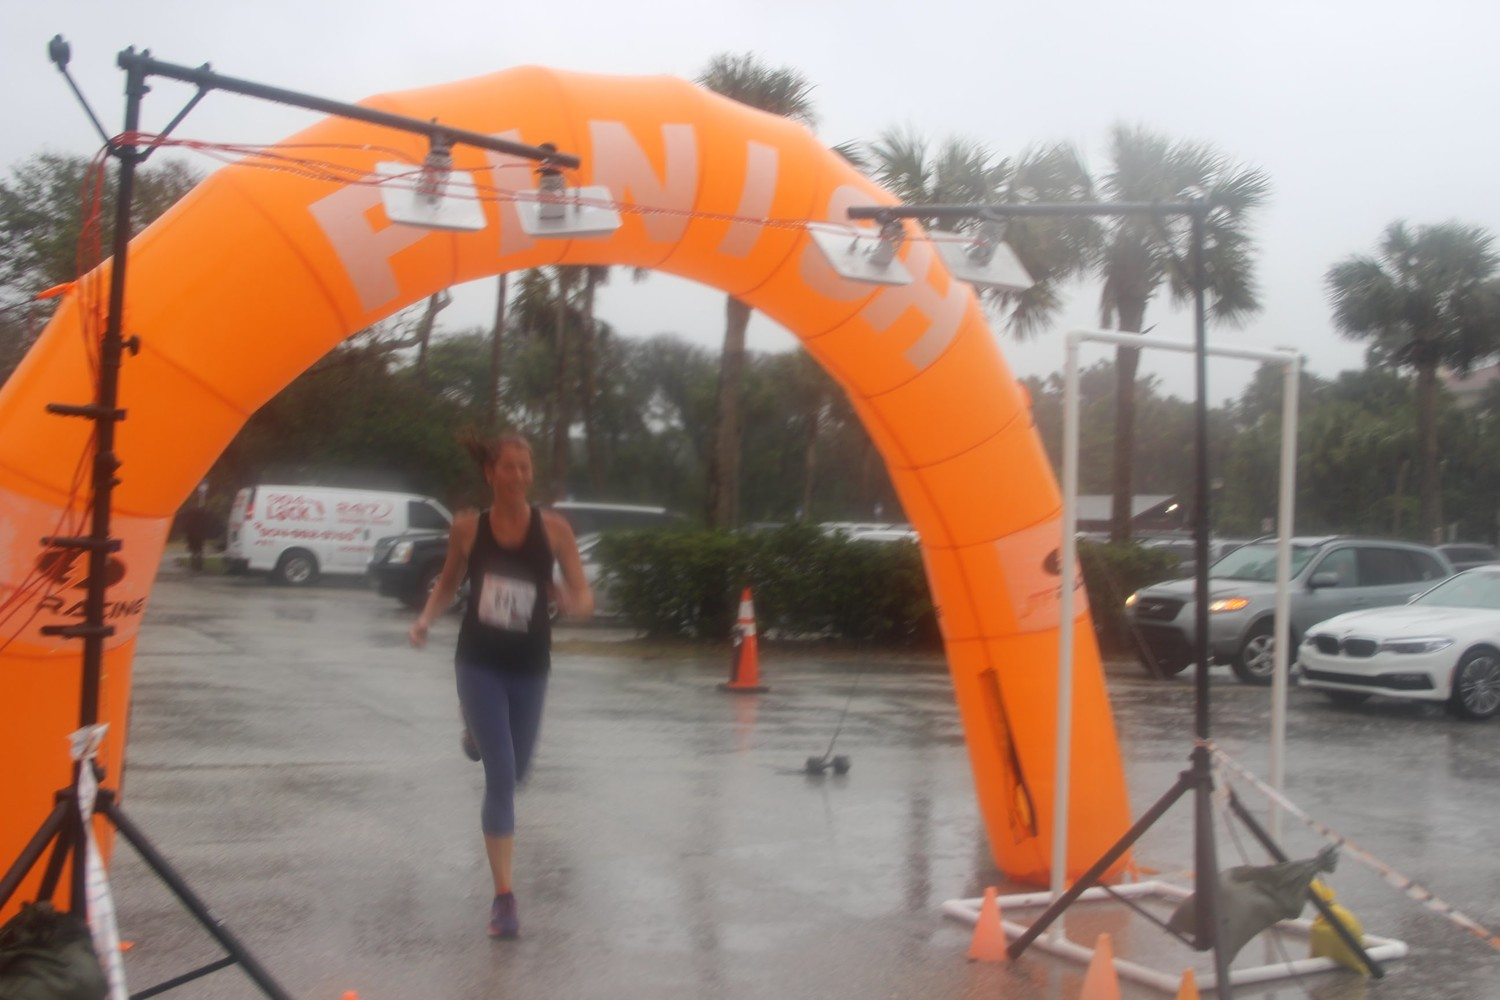 Amber Bolhuis finishes the race first in the female division.